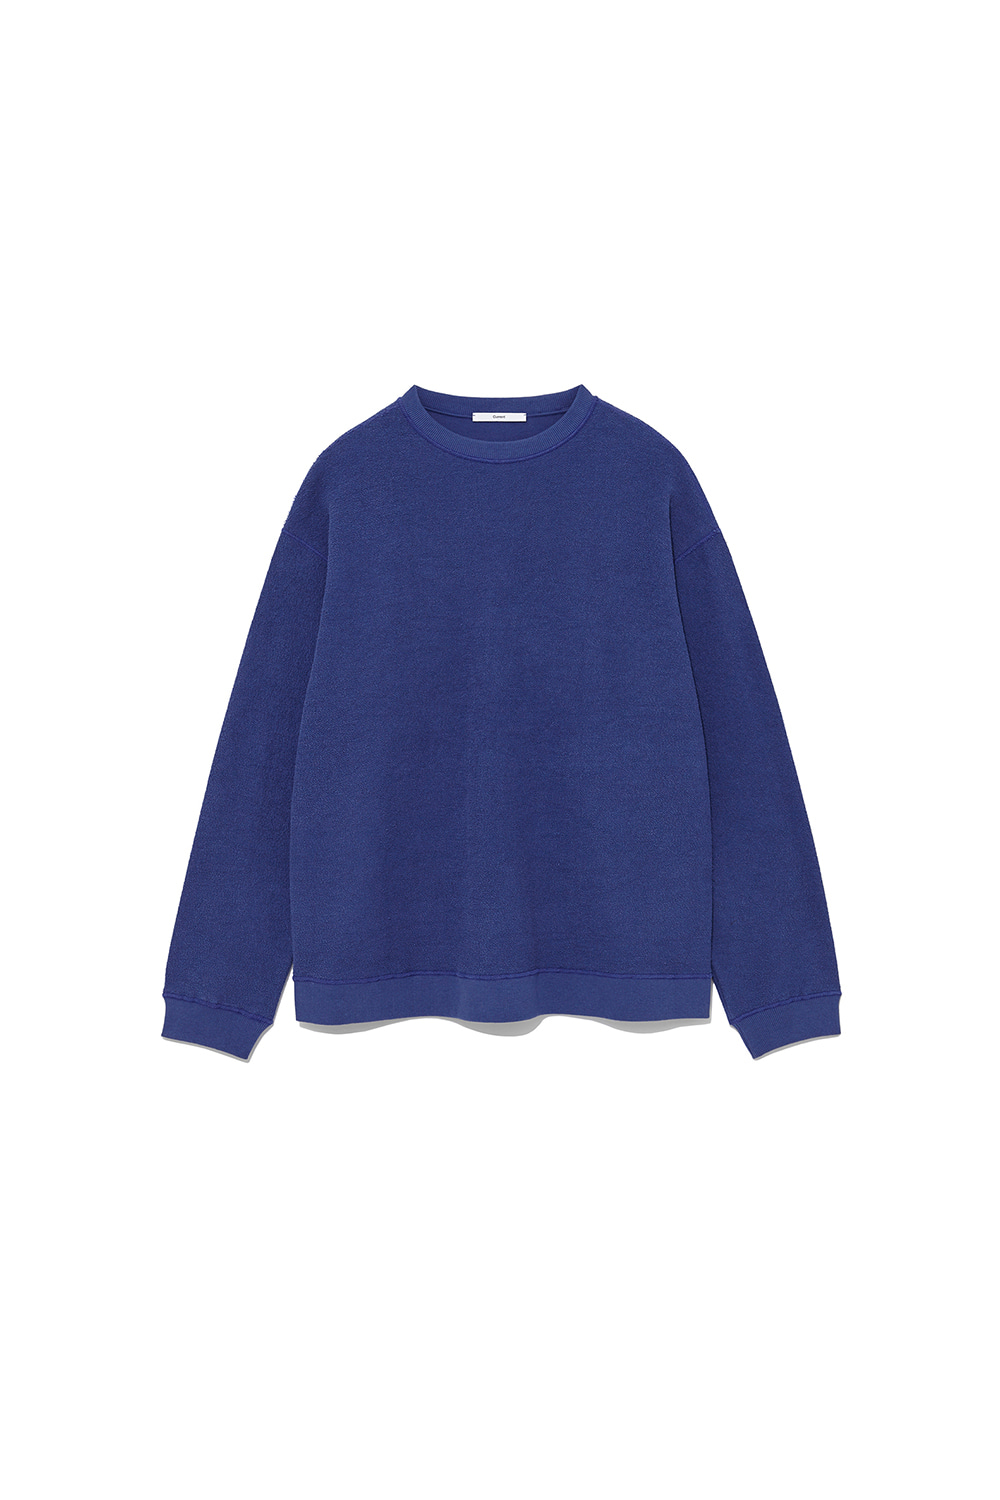 REVERSE SWEATSHIRT MAN [ROYAL BLUE]